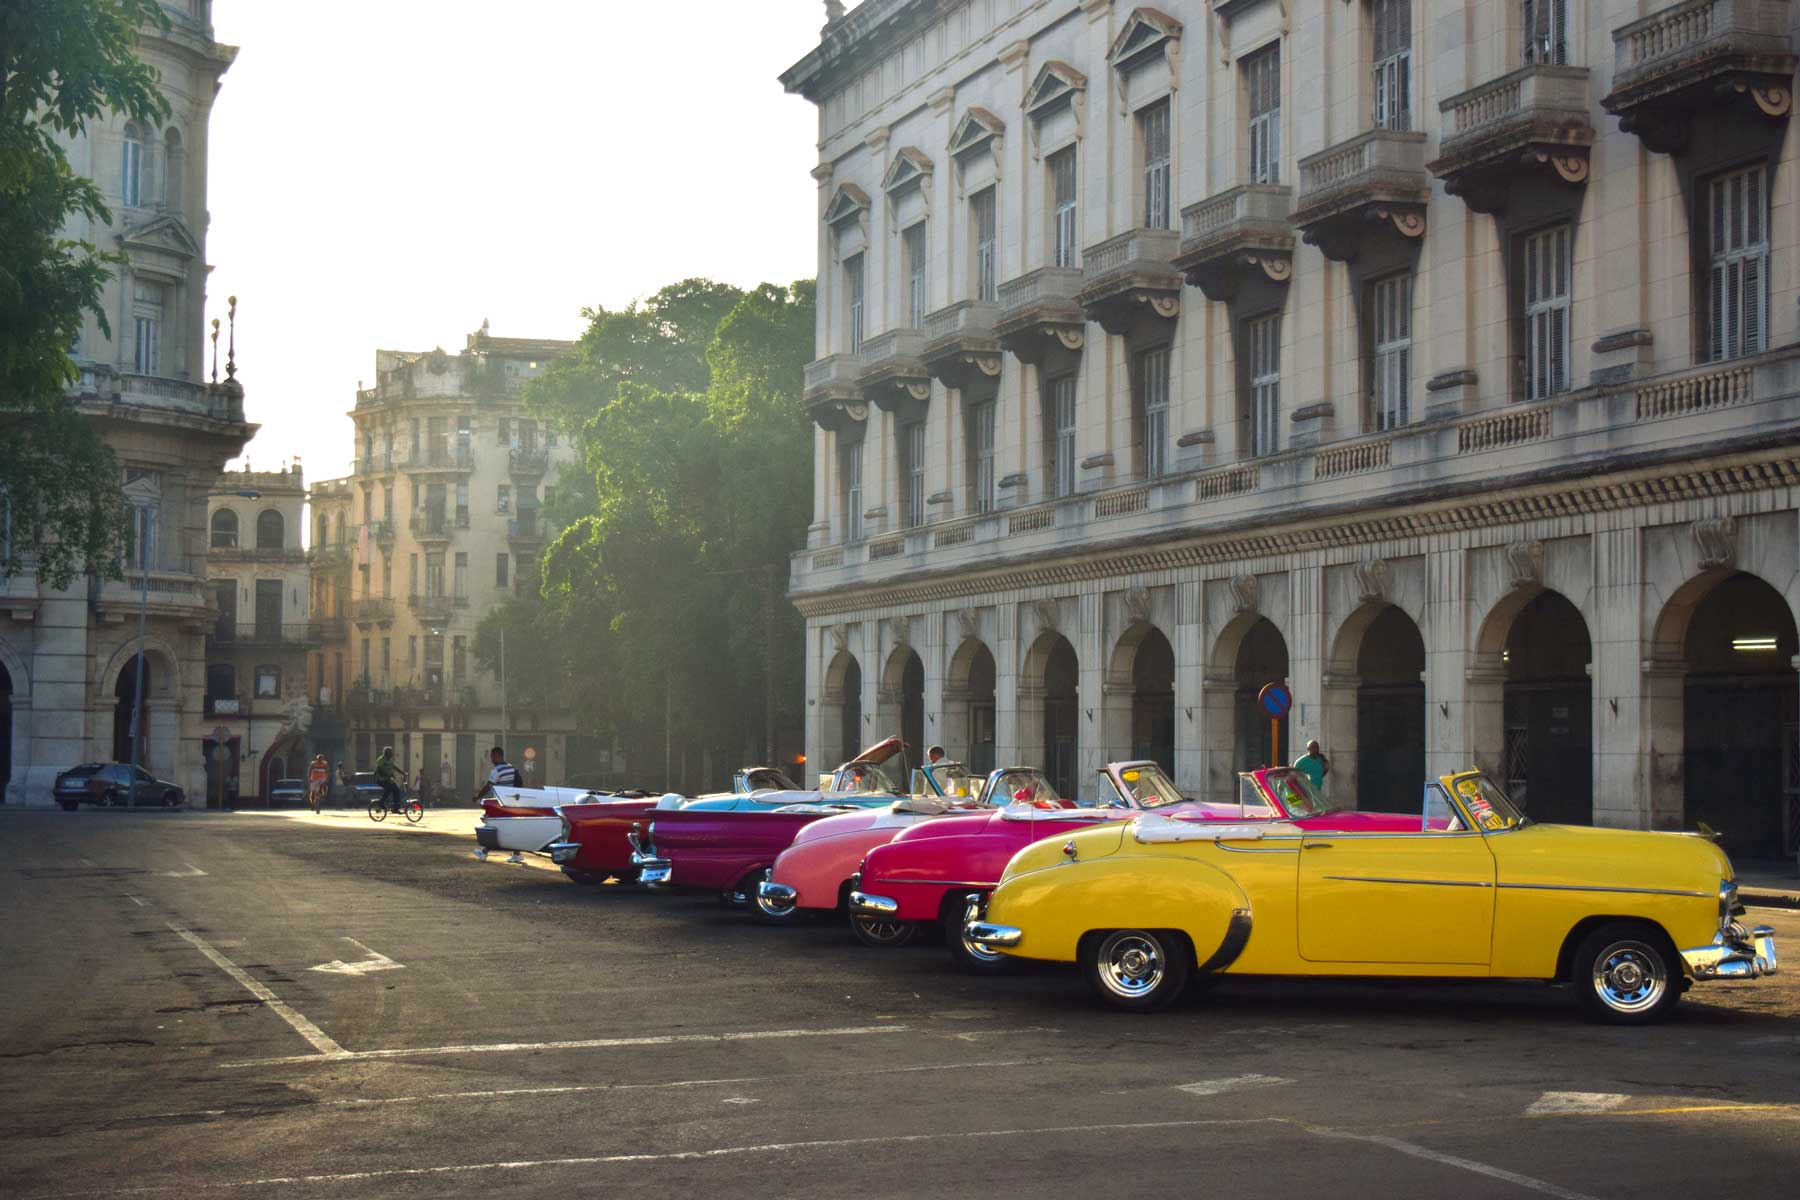 Havana, Cuba, UNESCO World Heritage Site showing vintage cars parked in the historic city center at sunrise.